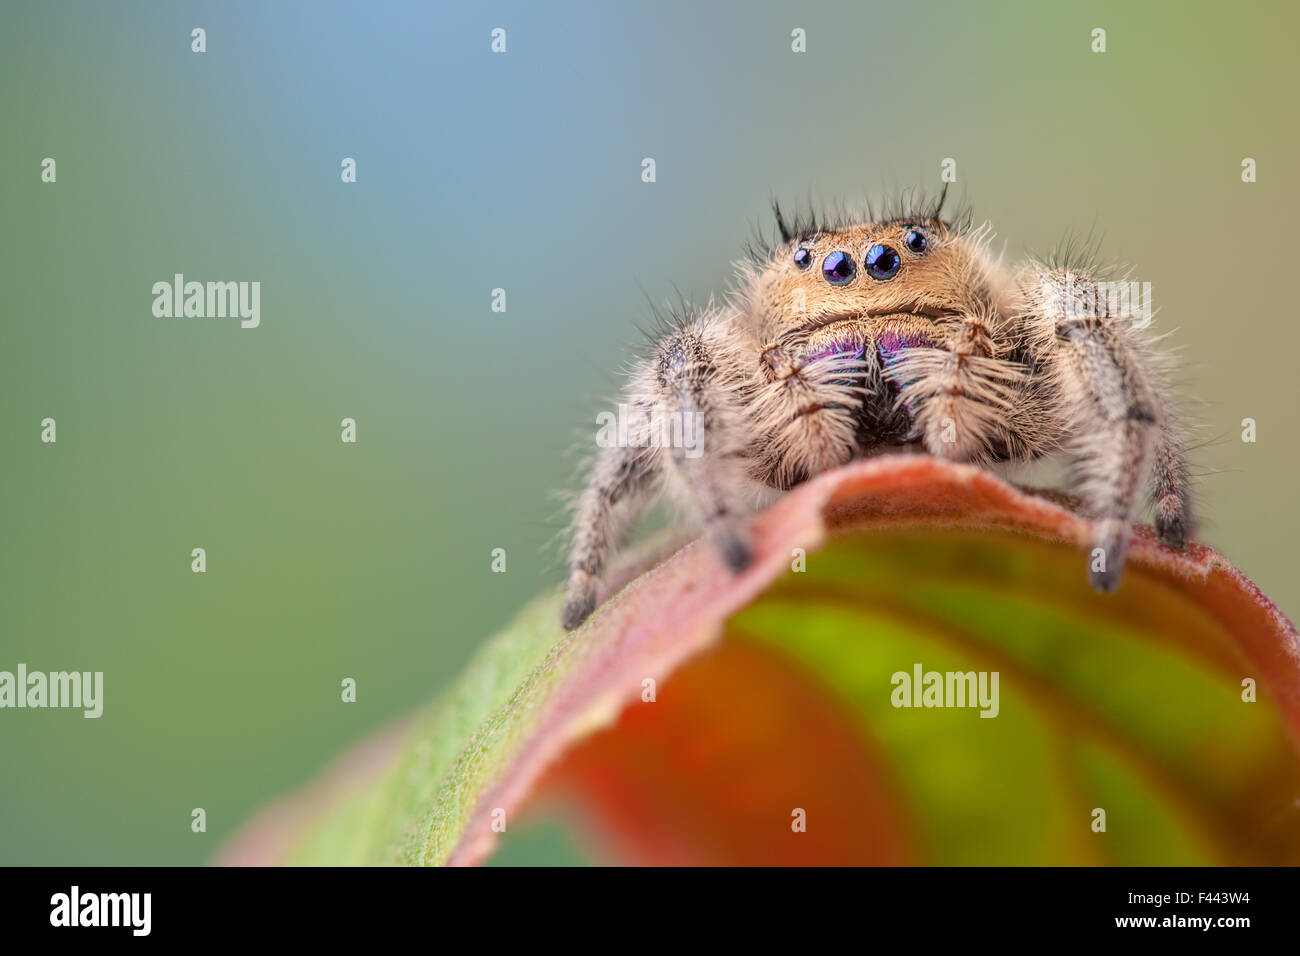 Regal Jumping Spider (Phidippus regius) female. Captive, endemic to North America. - Stock Image